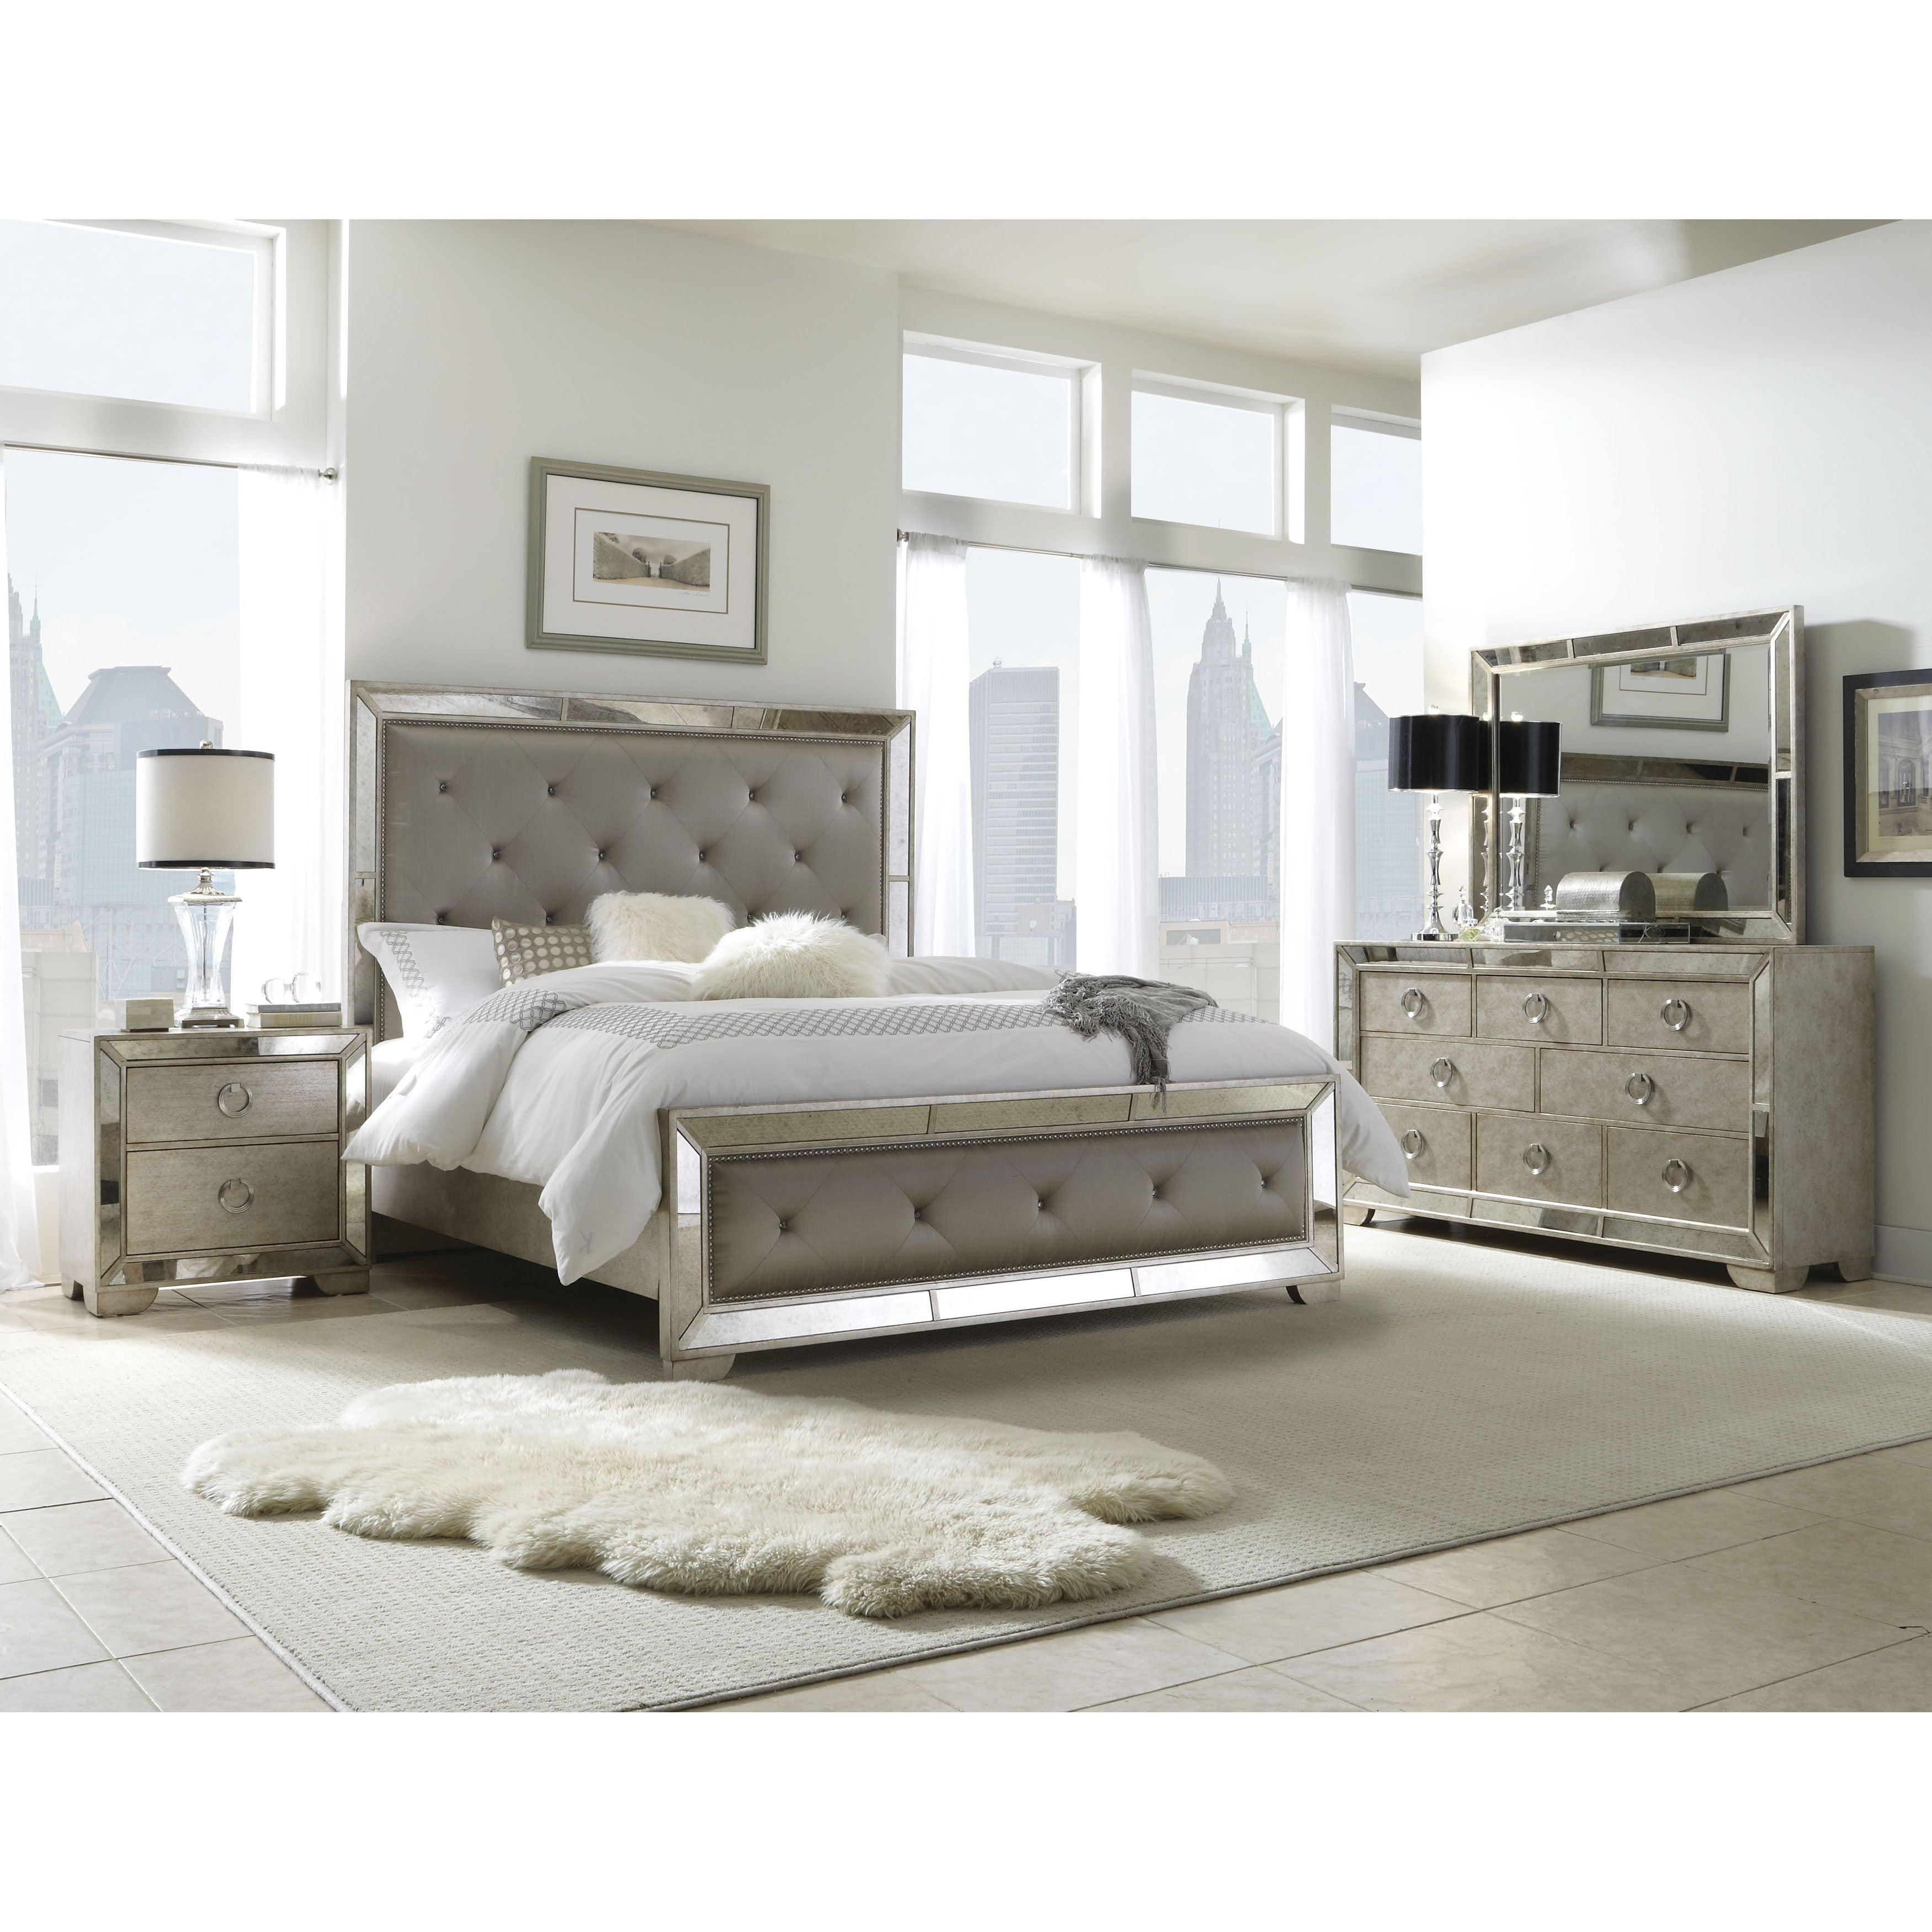 Shop Celine 5 Piece Mirrored And Upholstered Tufted Queen Size Bedroom Set On Sale Overstock 8409729